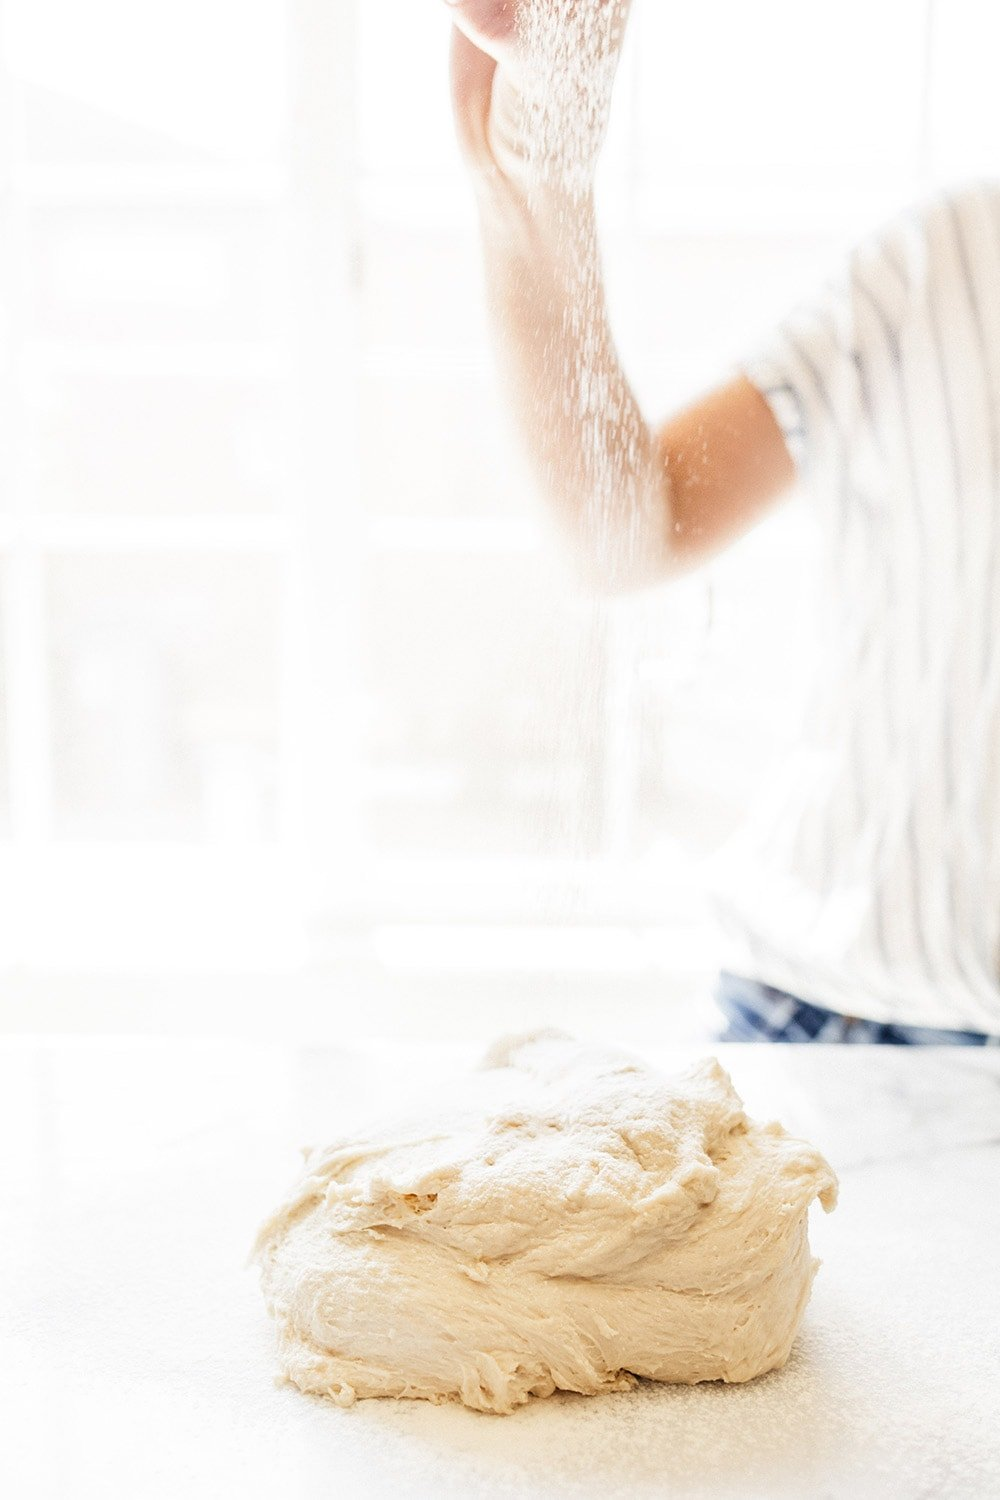 How to Knead Dough by hand without an electric mixer so you can create perfect bread rolls and loaves of bread. Kneading dough correctly is key!